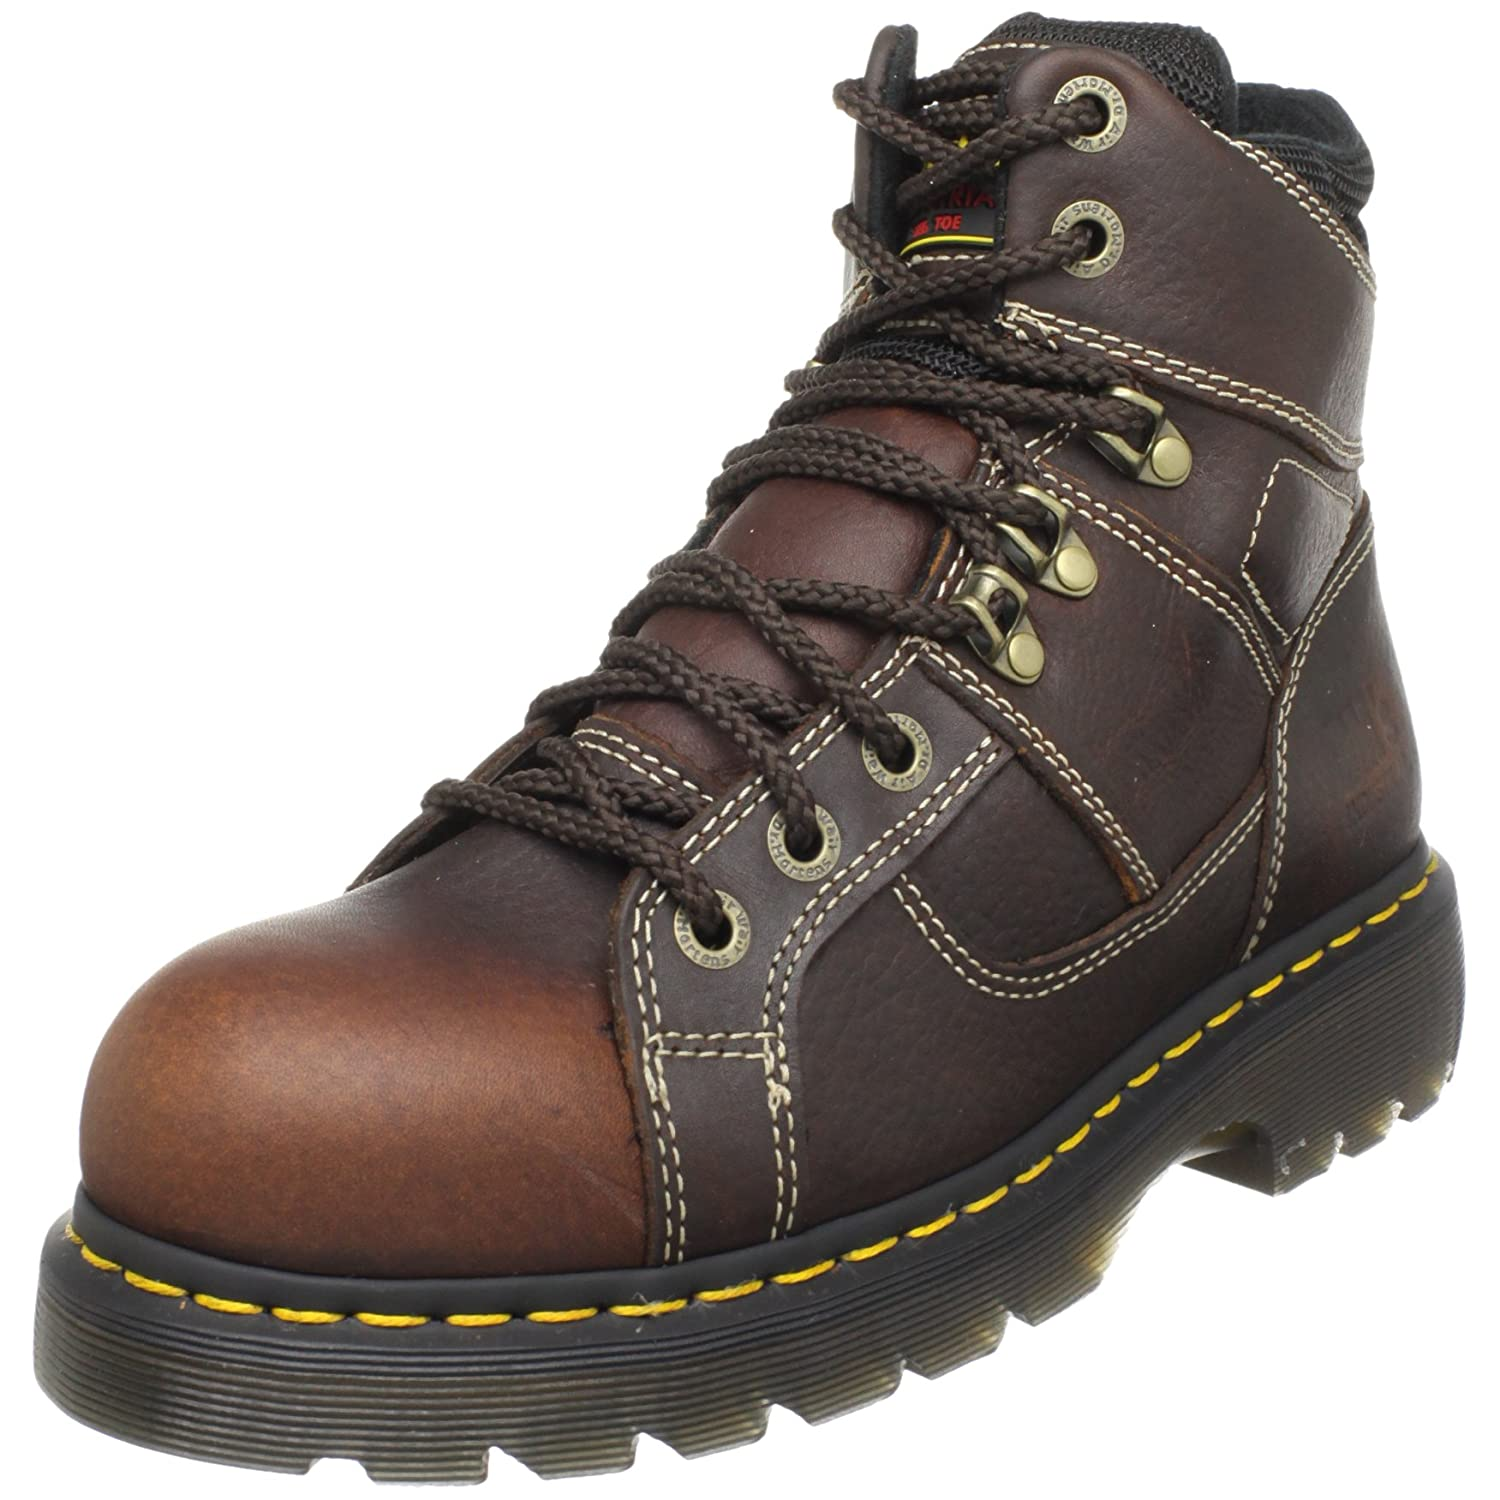 Dr. Martens Ironbridge Safety Toe Boot B001J4BM80 4 UK/6 M US Women's/5 M US Men's|Teak